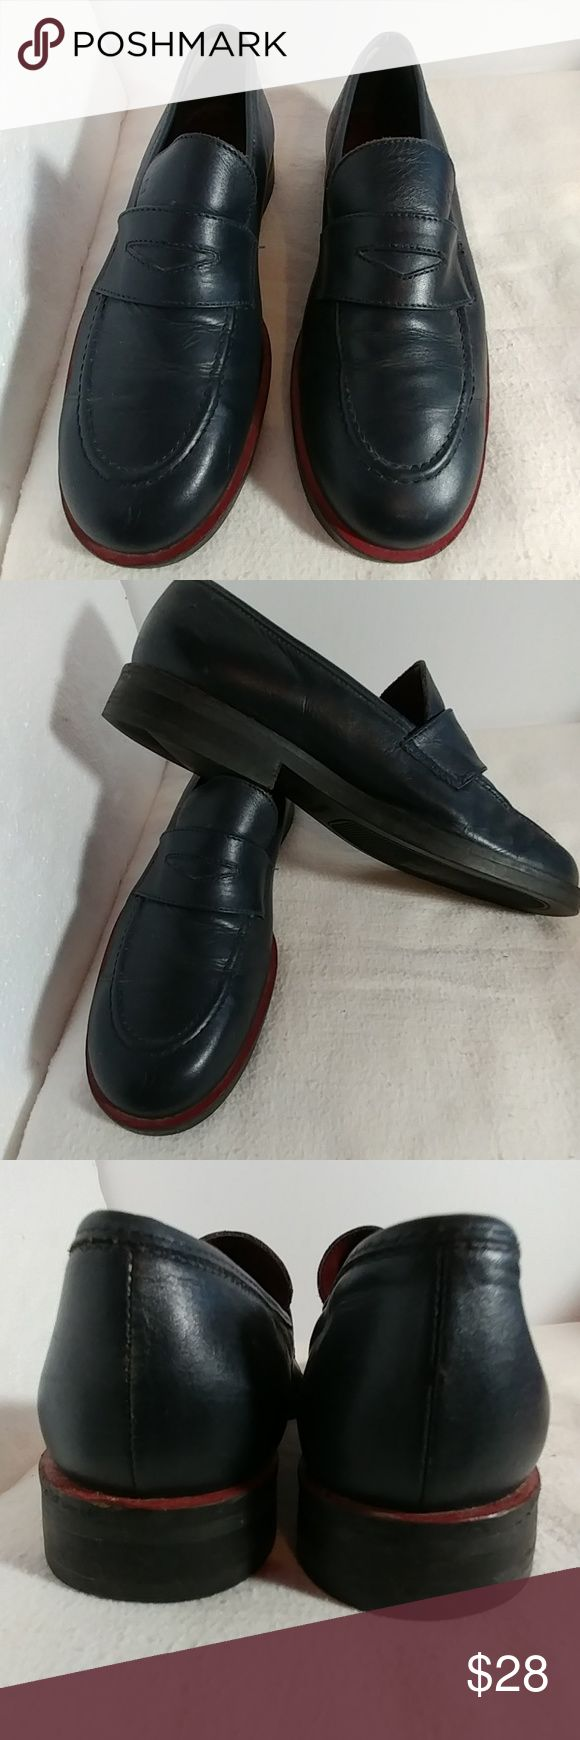 Women's size 8 TOMMY HILFIGER navy loafers Women's size 8 TOMMY HILFIGER navy loafers. These are like new. The quality and comfort of these shoes says it all. Any questions please feel free to contact me. Tommy Hilfiger Shoes Flats & Loafers